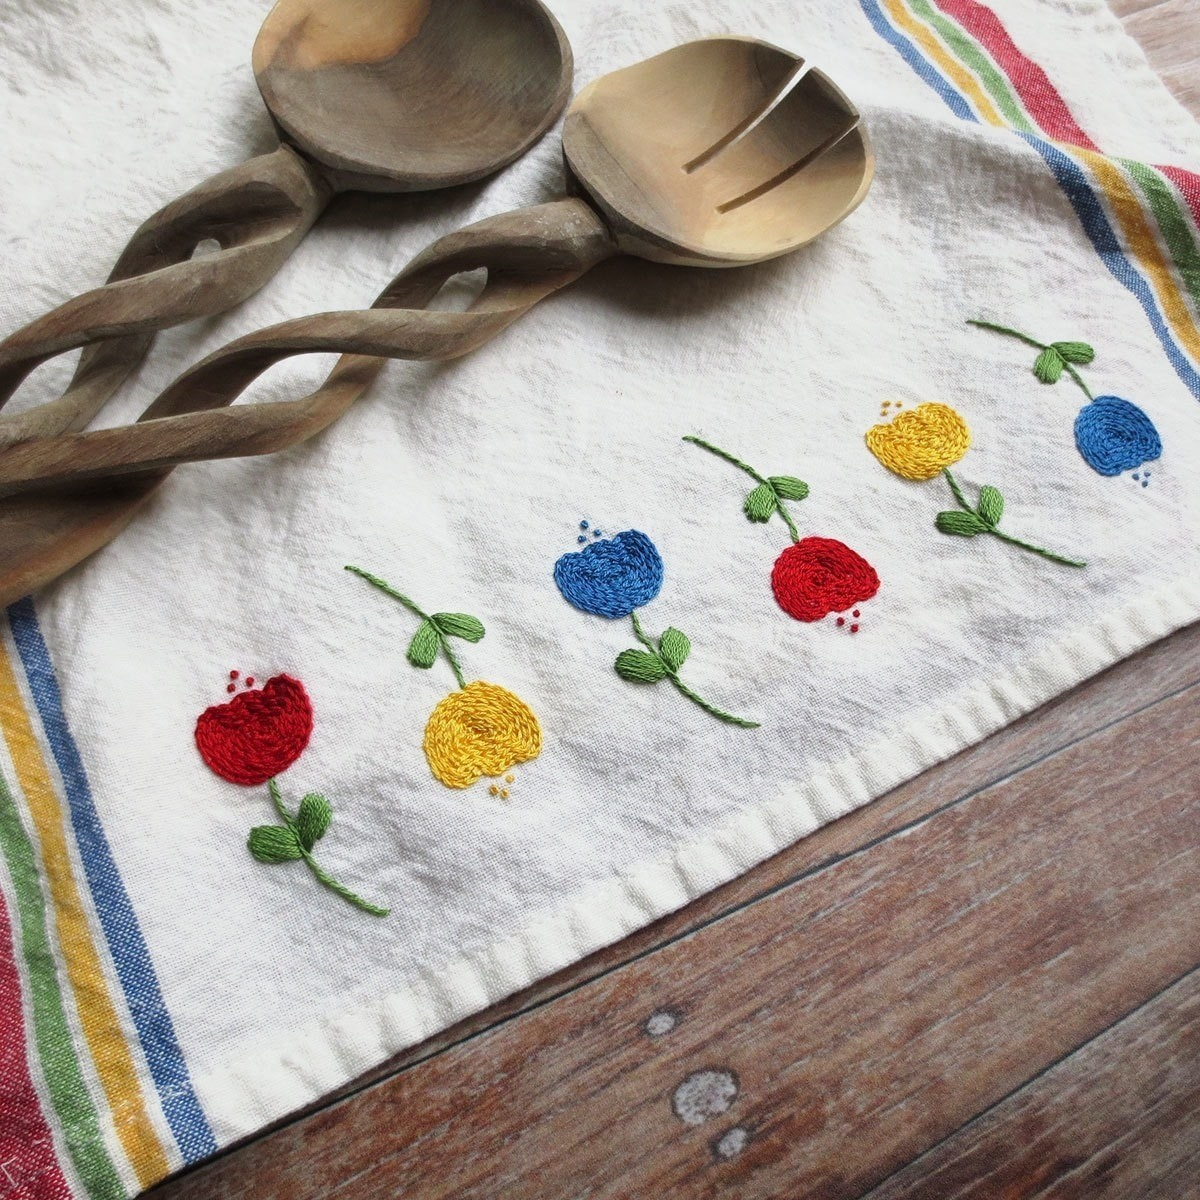 Kitchen Towel Embroidery Patterns Embroidered Tulip Tea Towel How To Make A Tea Towel Needlework